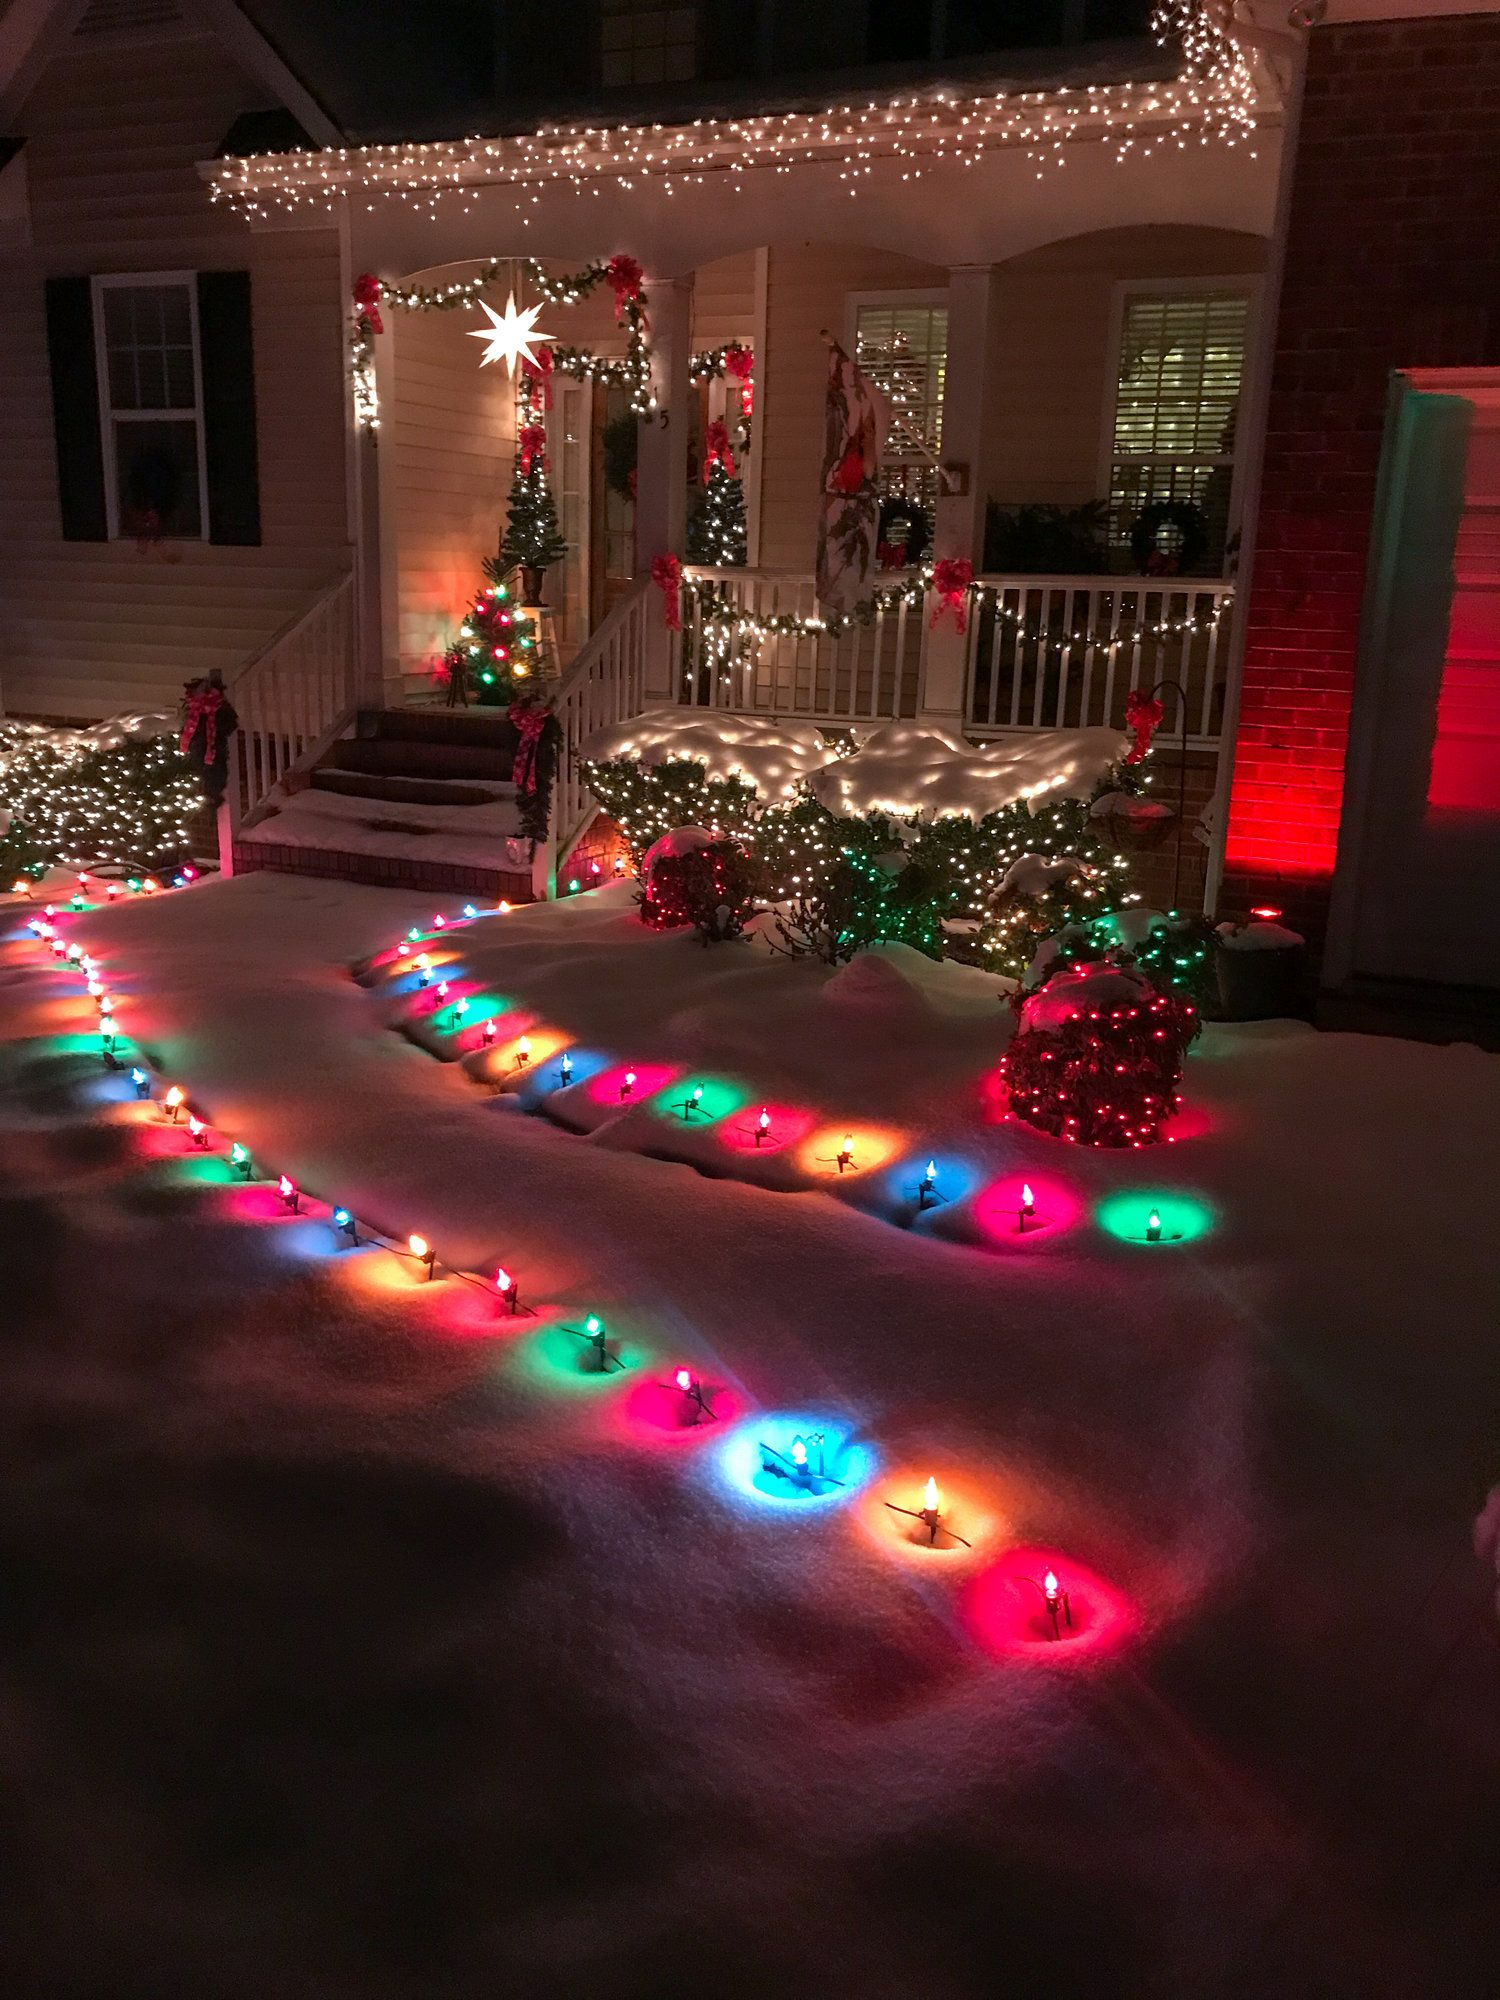 Colorful Outdoor Christmas Lights Showing Off In The Snow Outdoor Christmas Decorations Lights Christmas House Lights Decorating With Christmas Lights